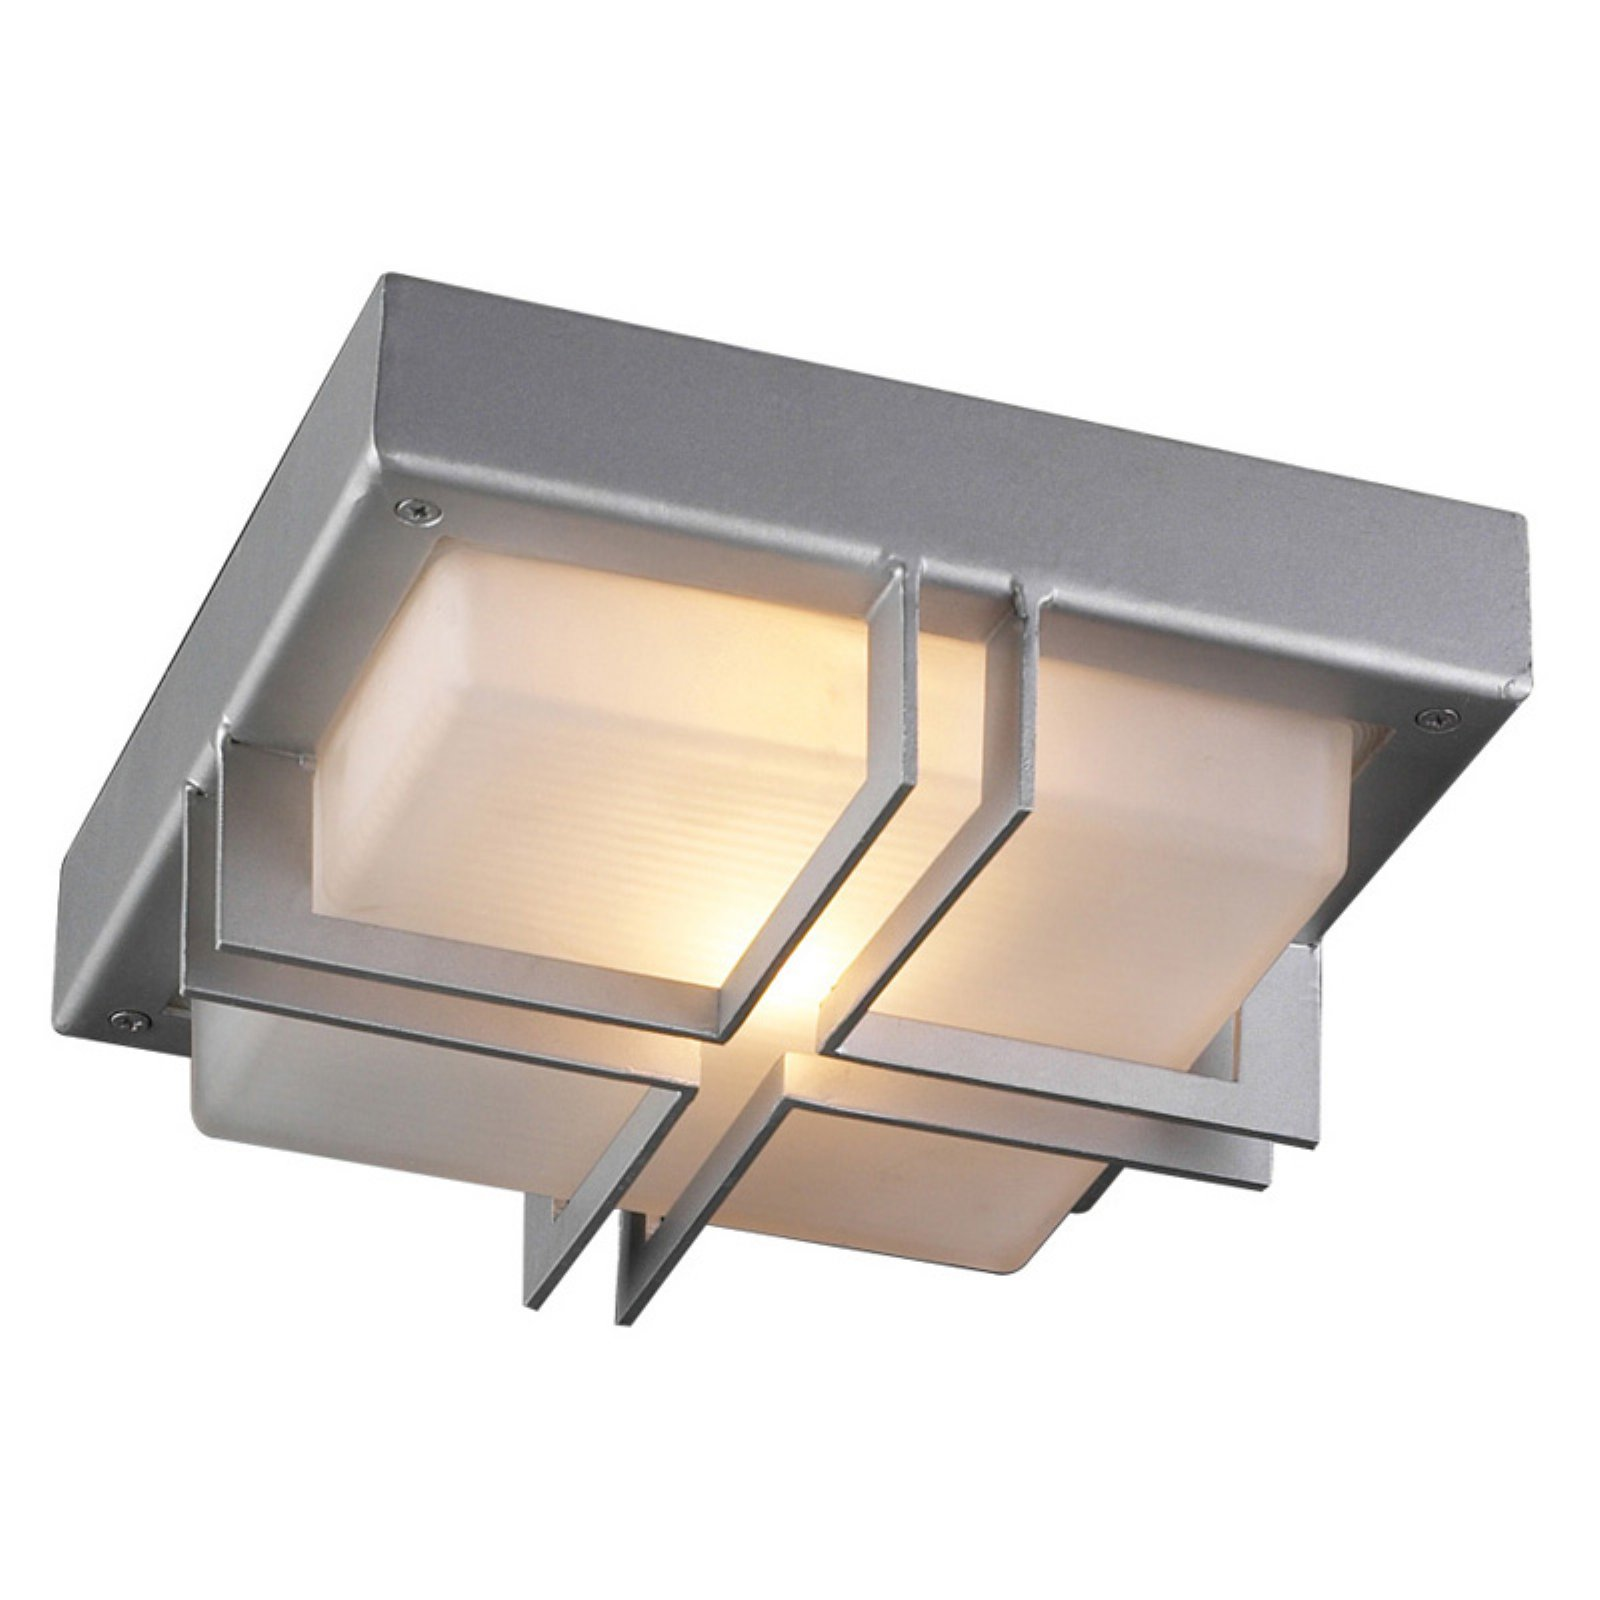 PLC Lighting Piccolo 8026 Outdoor Wall / Ceiling Light